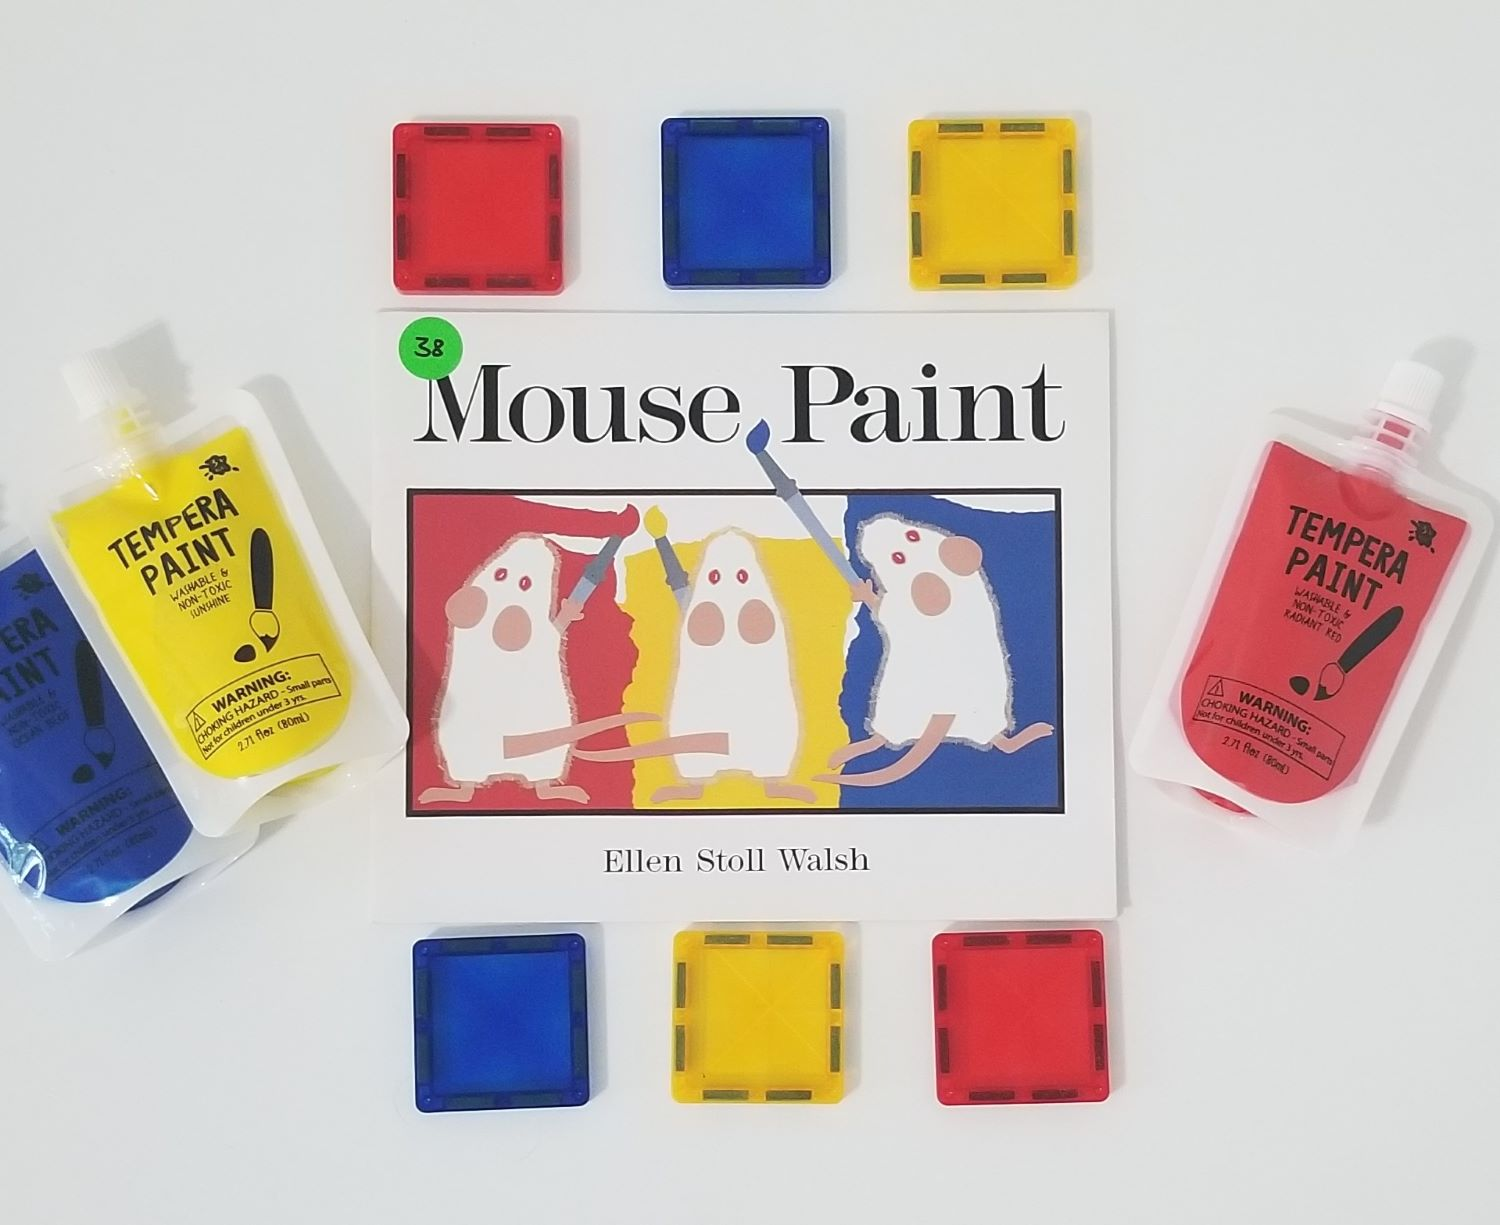 mouse paint color mixing activity flatlay